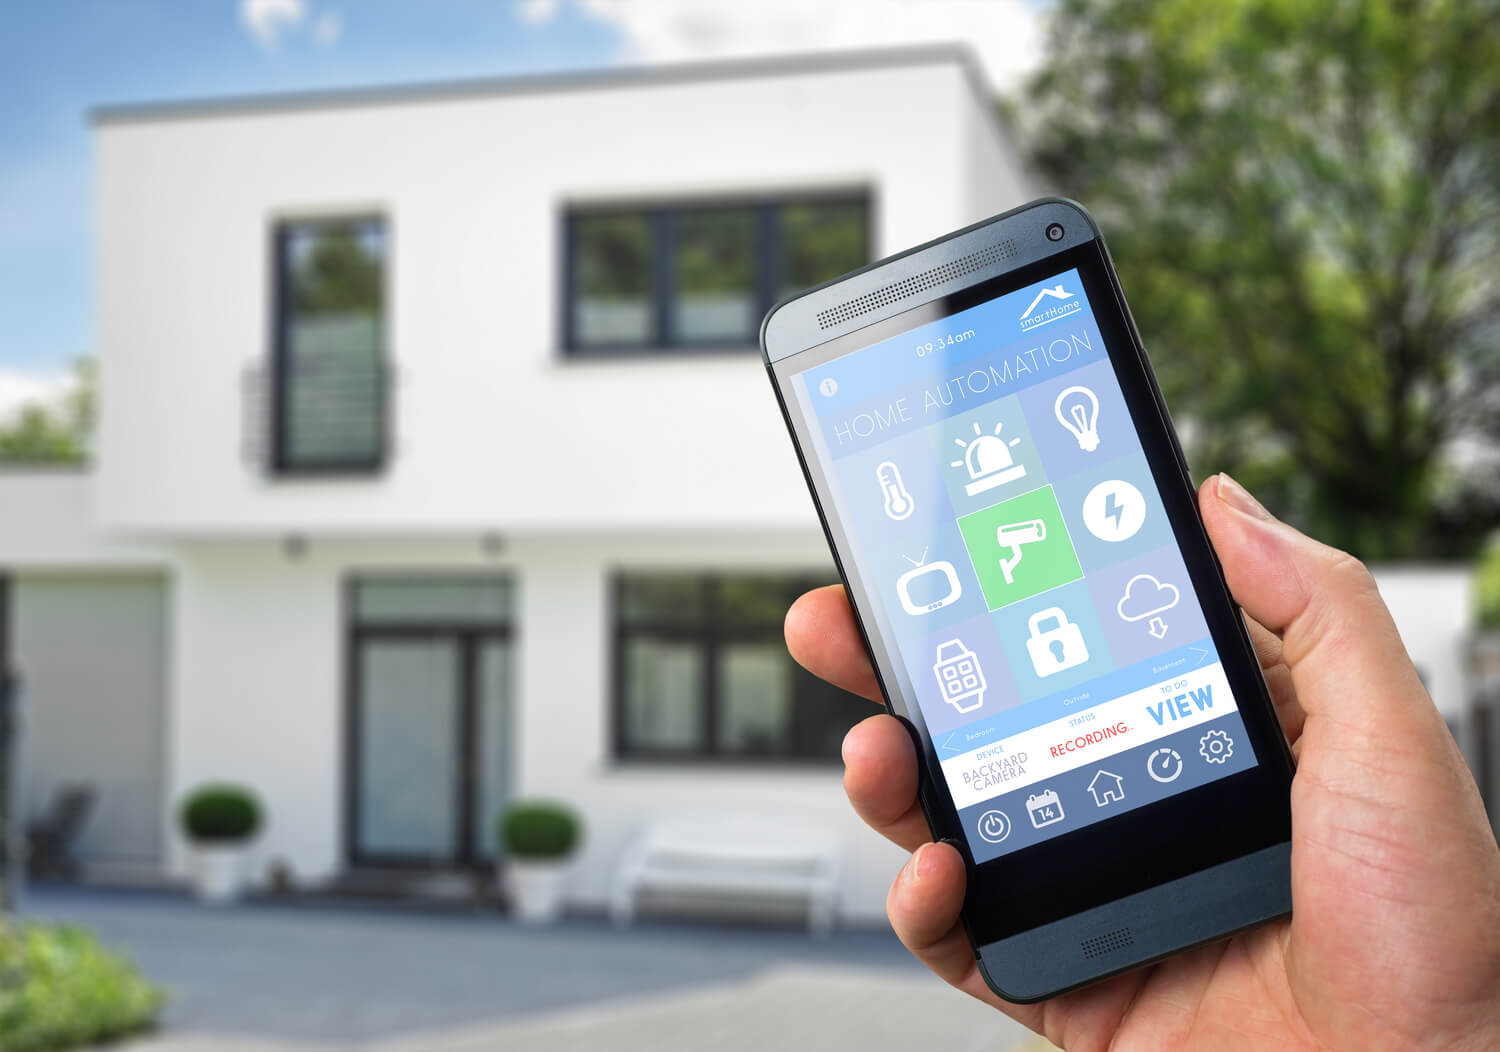 Reasons For Telecom Companies Moving Into The Home Security Industry